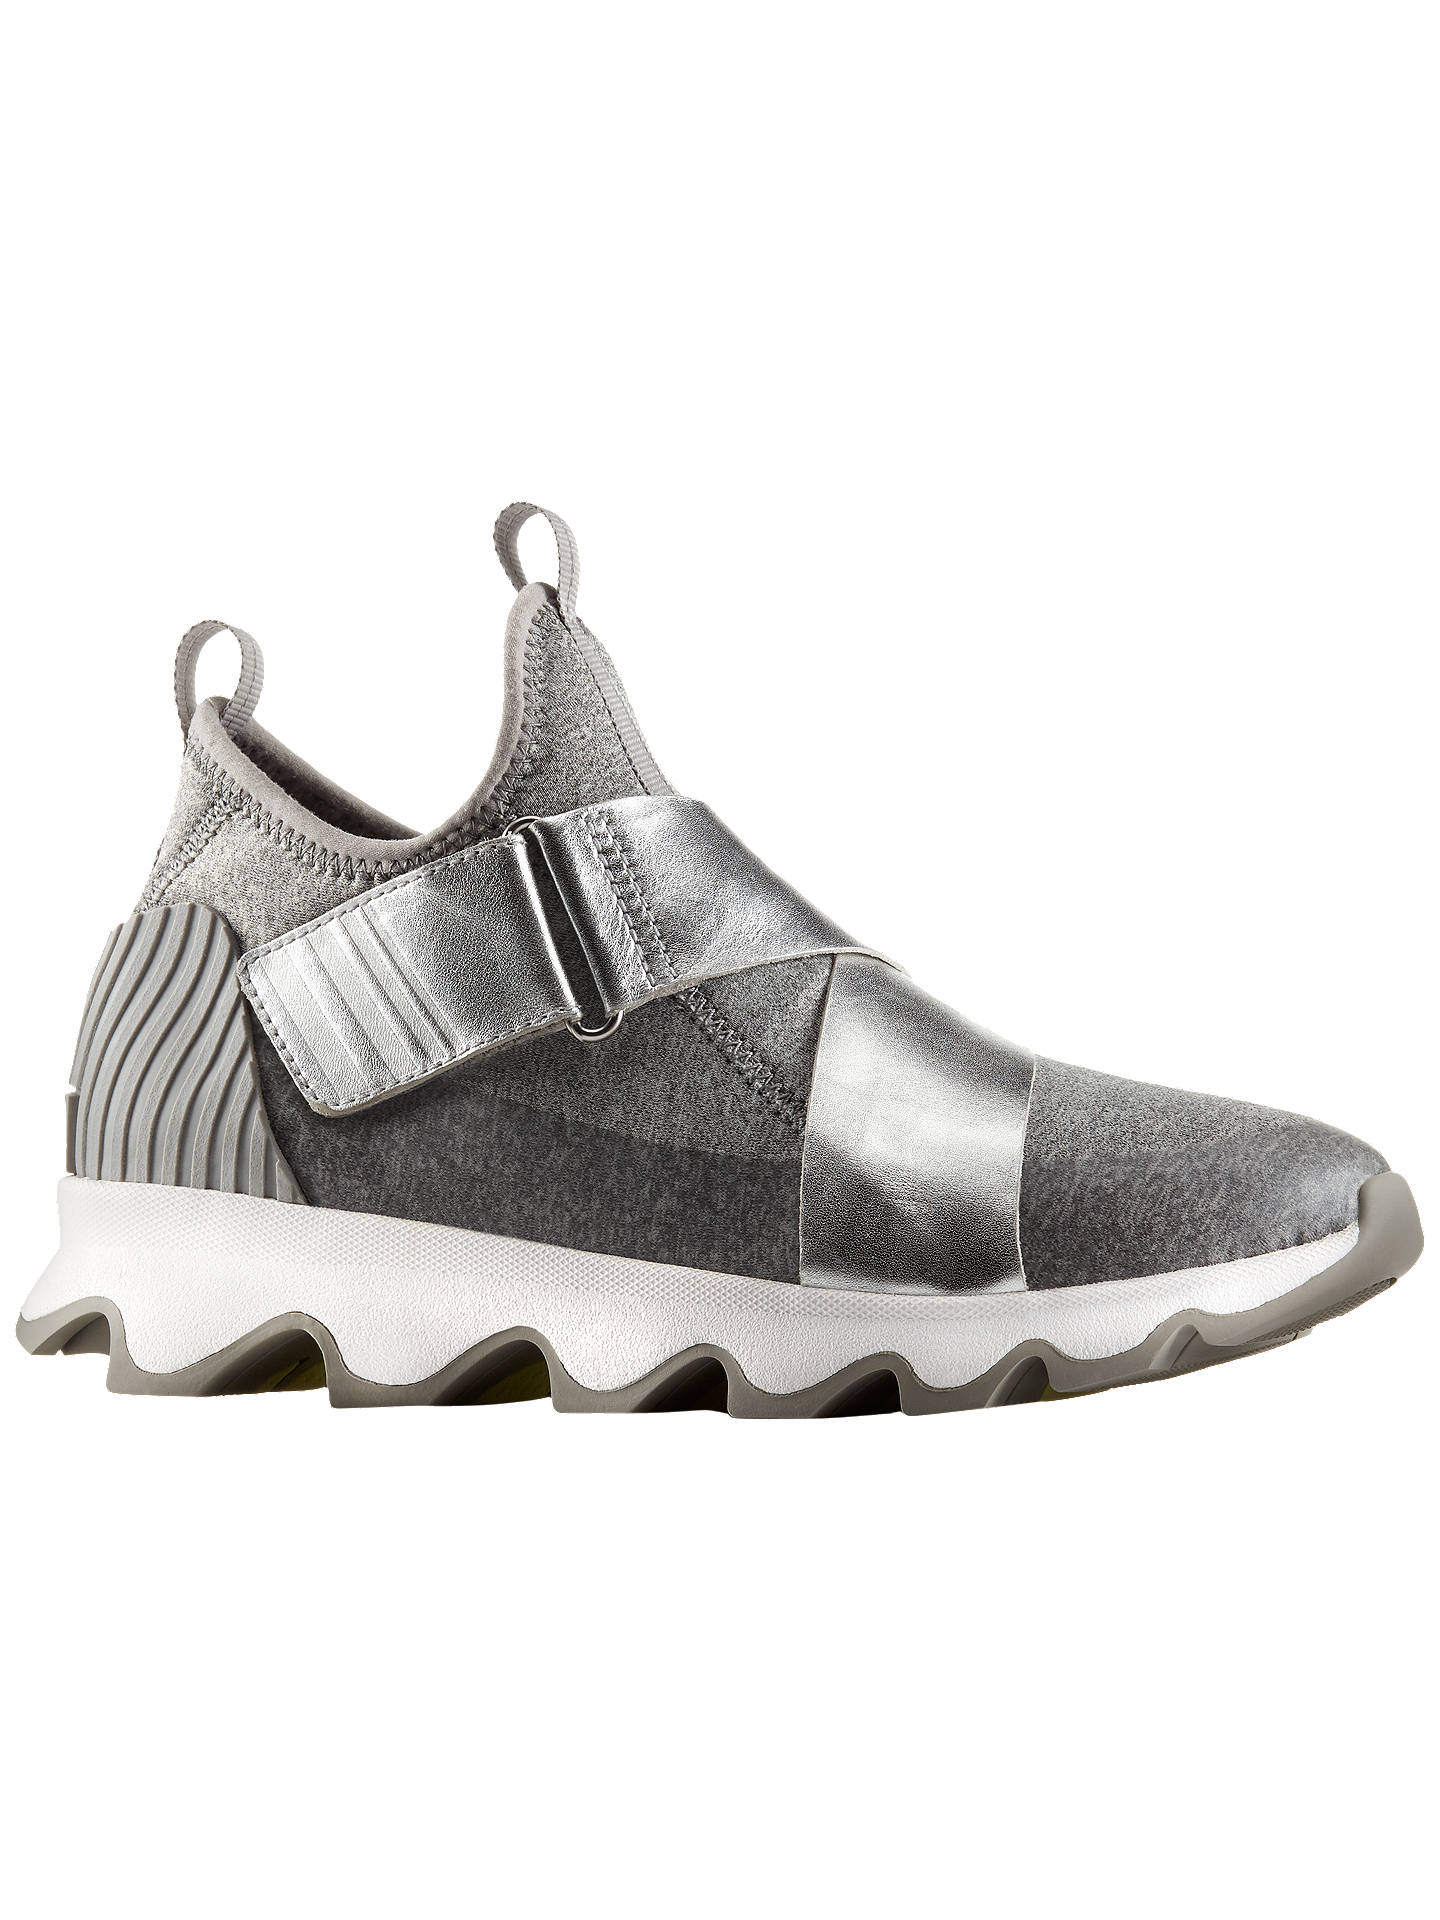 BuySorel Kinetic Metallic Sneak Women's Trainers, Silver, 4 Online at johnlewis.com